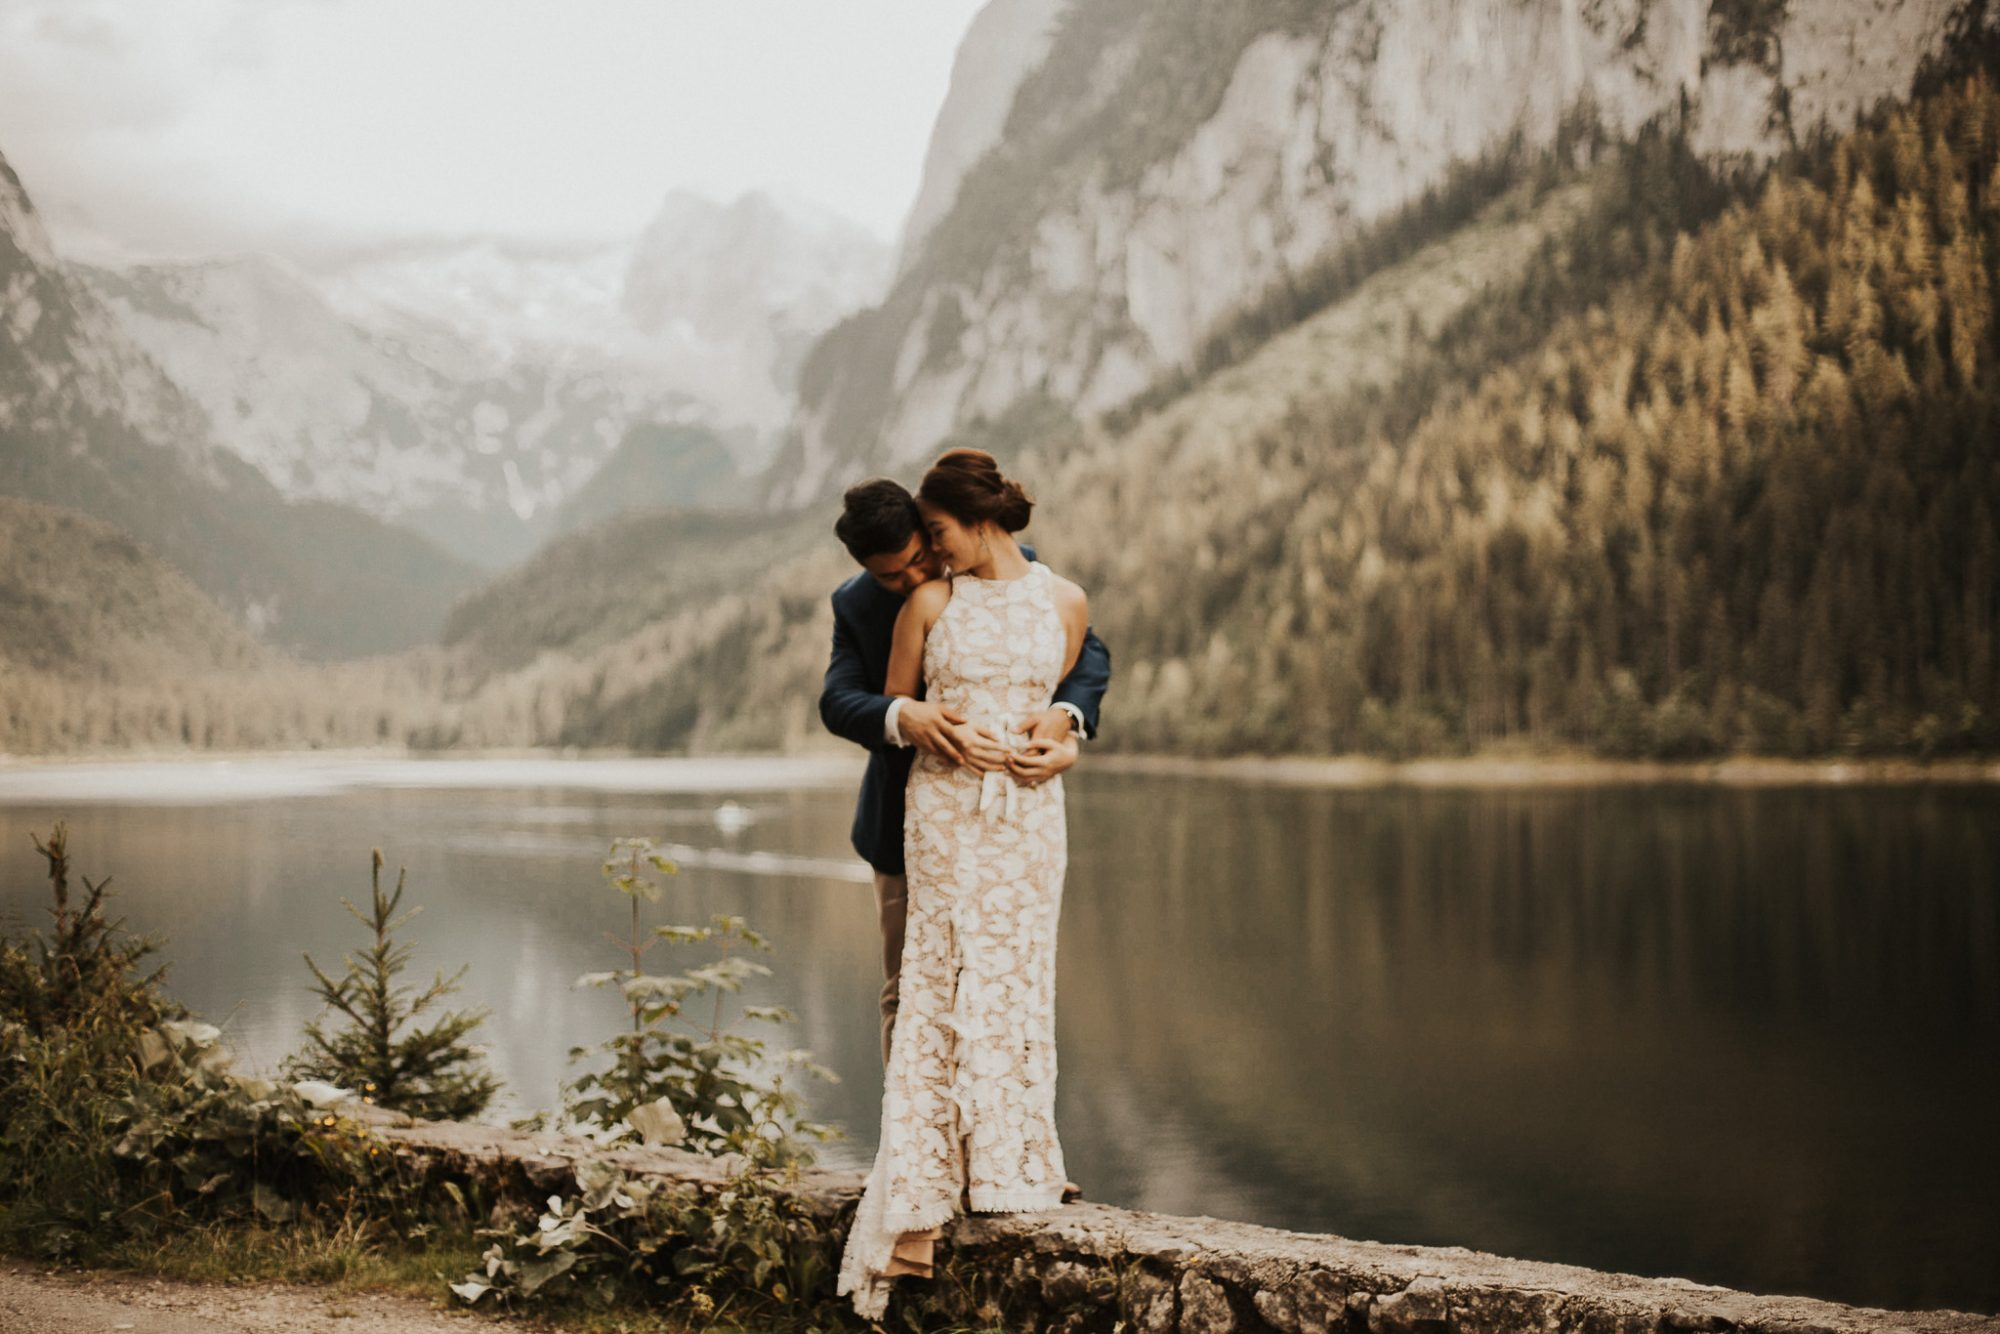 Hallstatt wedding elopement in austria